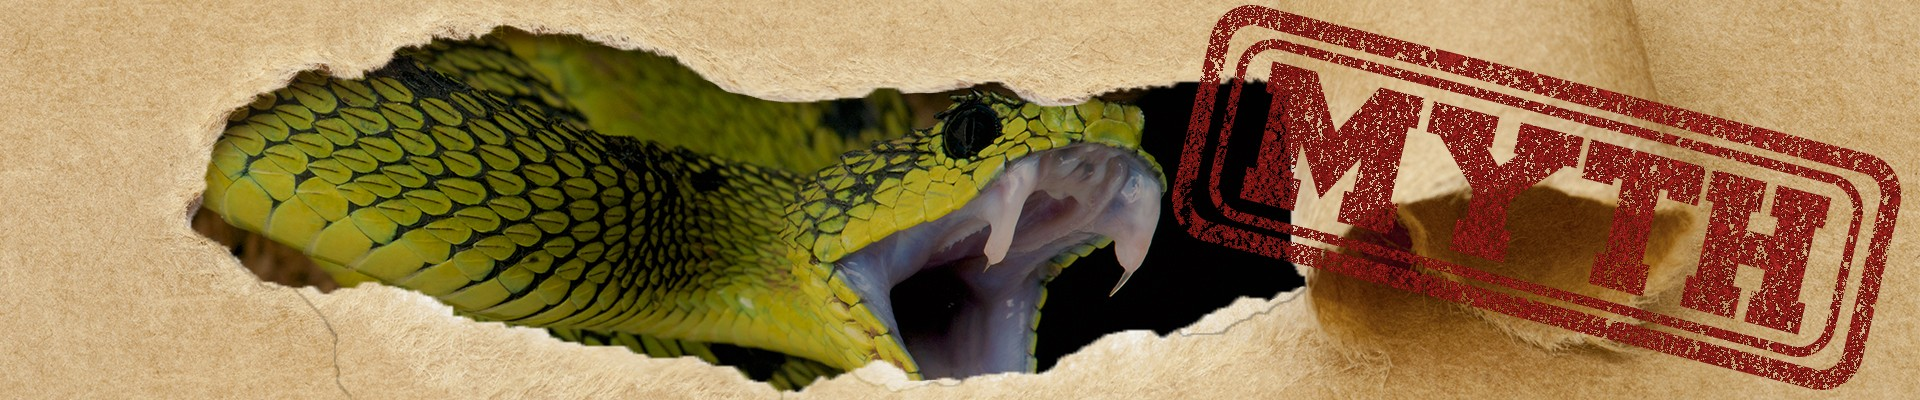 What should you do when you get bit by a snake?